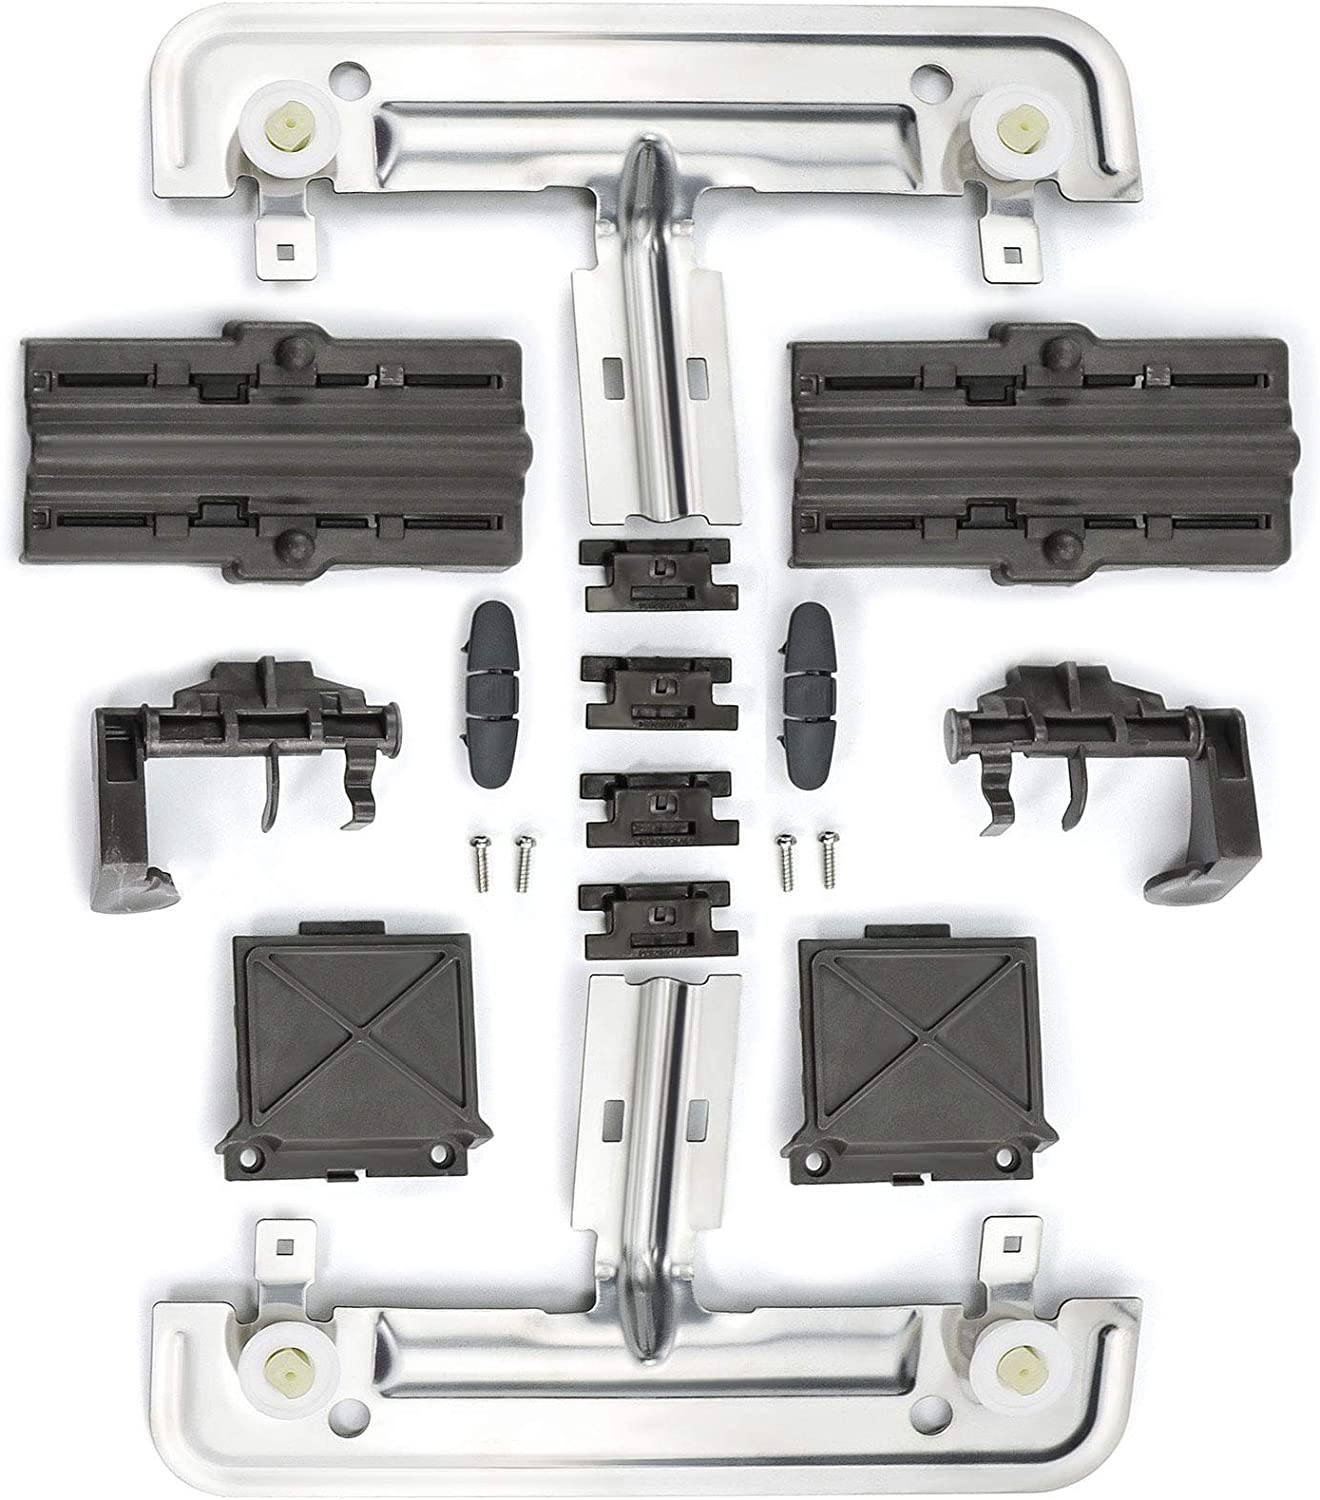 18 pack W10712395 Dishwasher Upper Rack Adjuster Metal Kit,Compatible with Whirlpool kenmore Dishwasher,Dishwasher Parts Replacement for W10250159 W10350375 3516330 W10712395VP AP595756